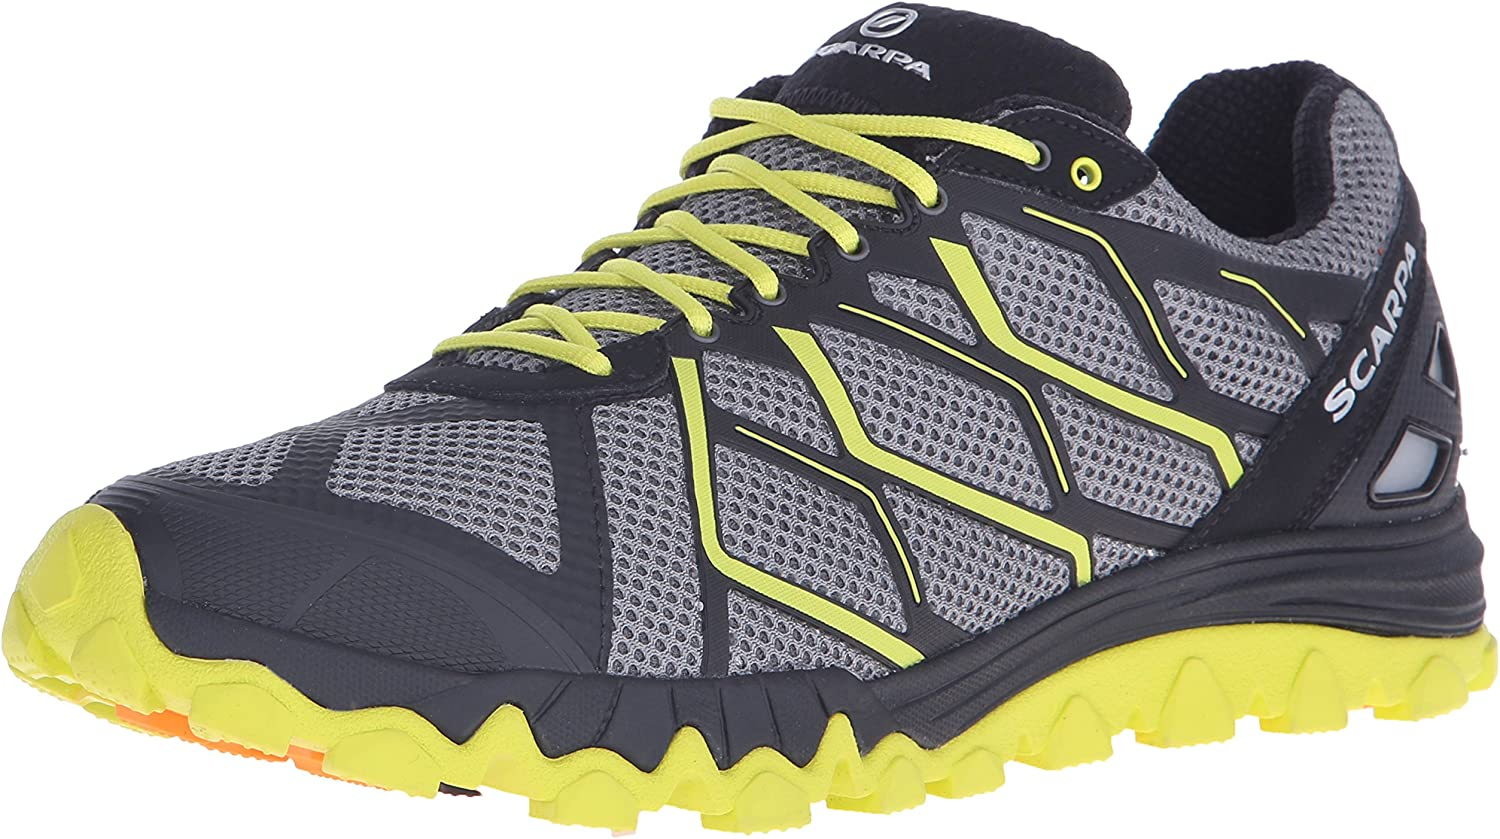 SCARPA Men s Proton Trail Running Shoe Runner